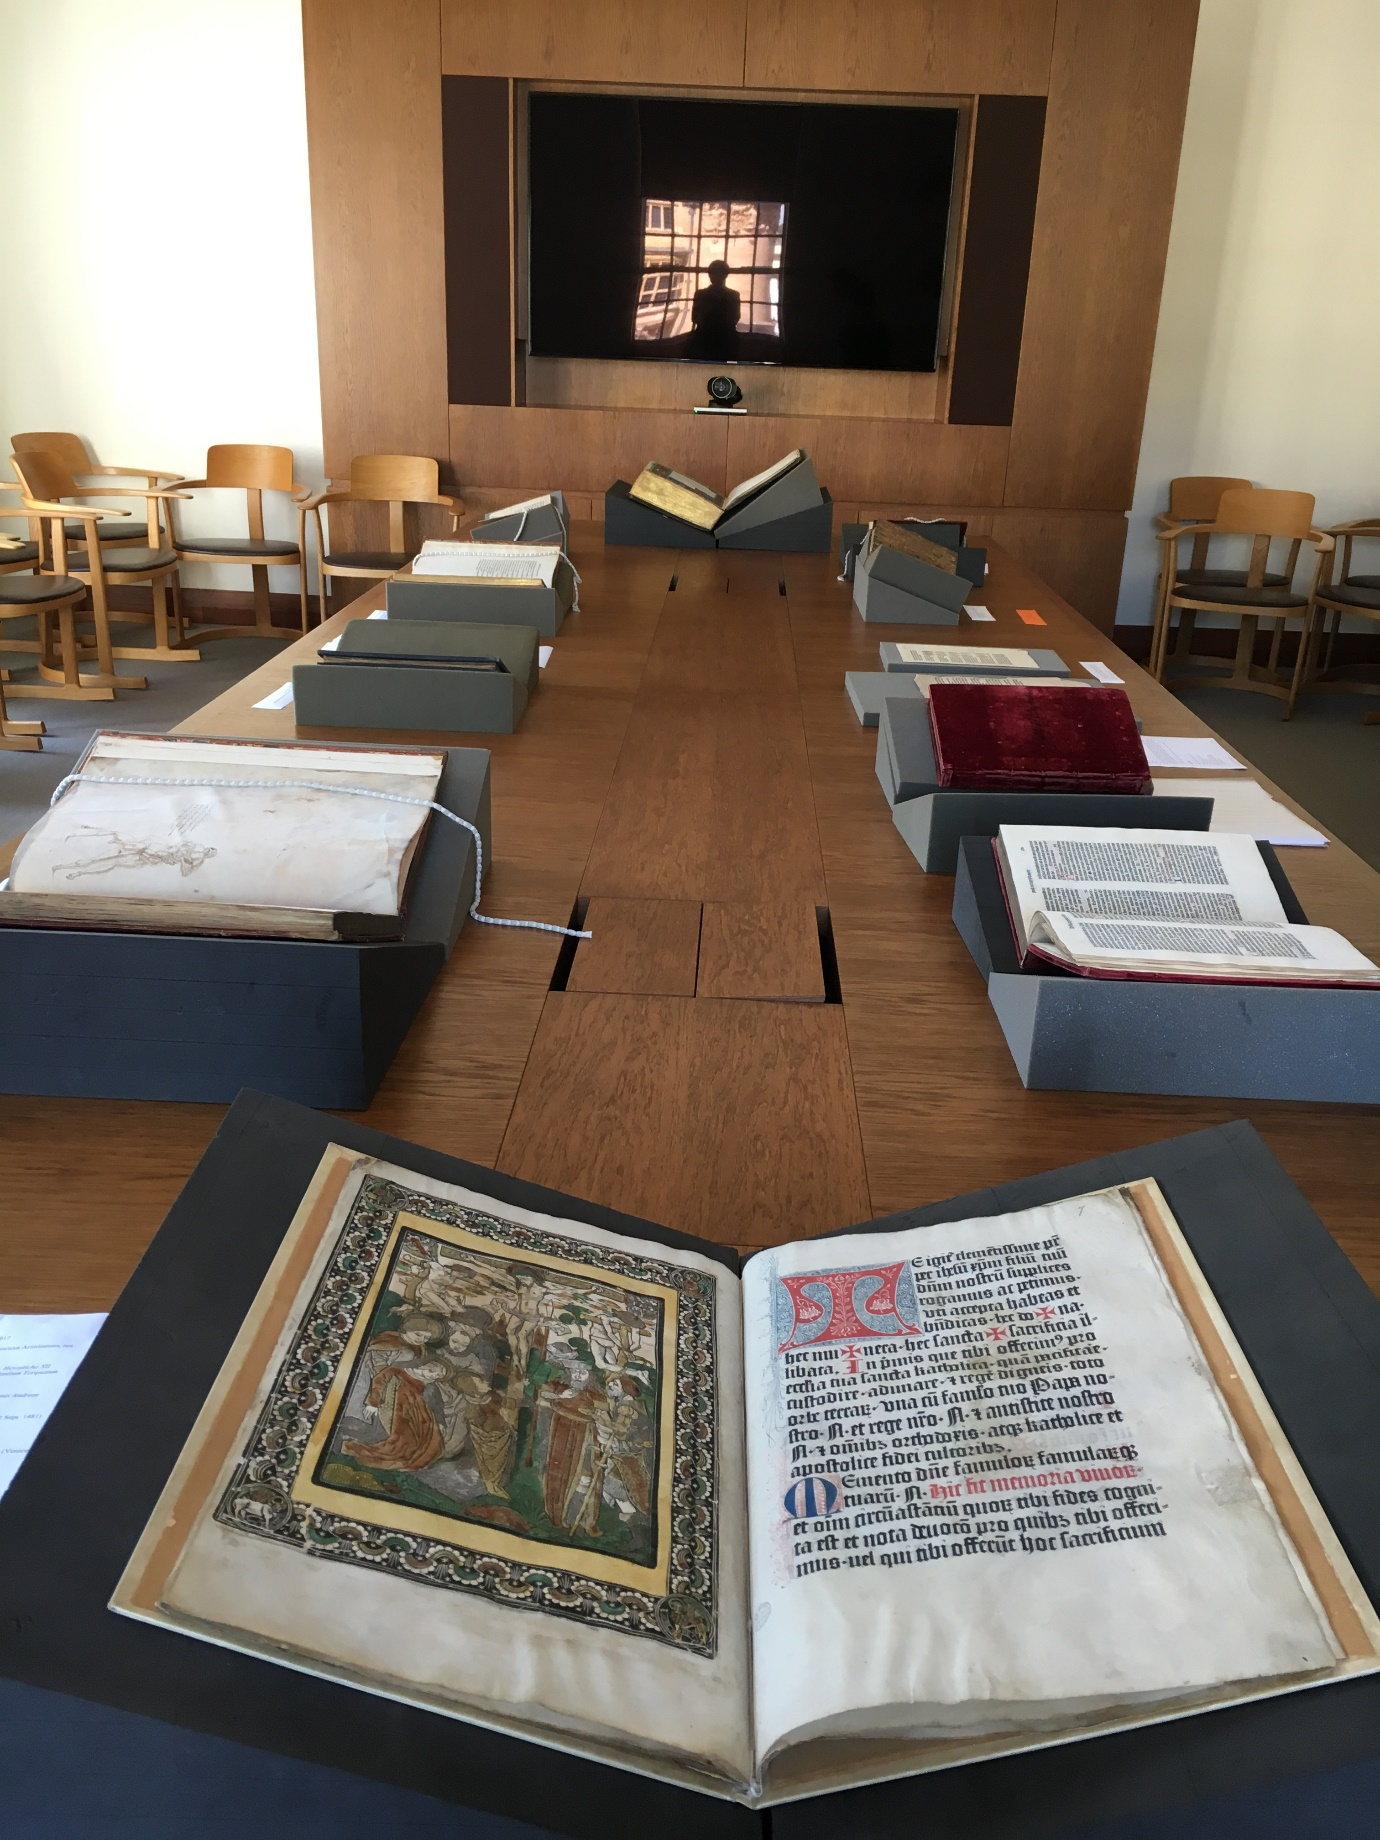 The display in the Bahari Room, Weston Library. The Mainz Canon Missae at the front, the drawing of Marco Zoppo on the front endleaf of Clemens V's Constitutiones, and opposite, a rare surviving copy of a Paris Missal, in two volumes, camouflaged in revolutionary legislation.